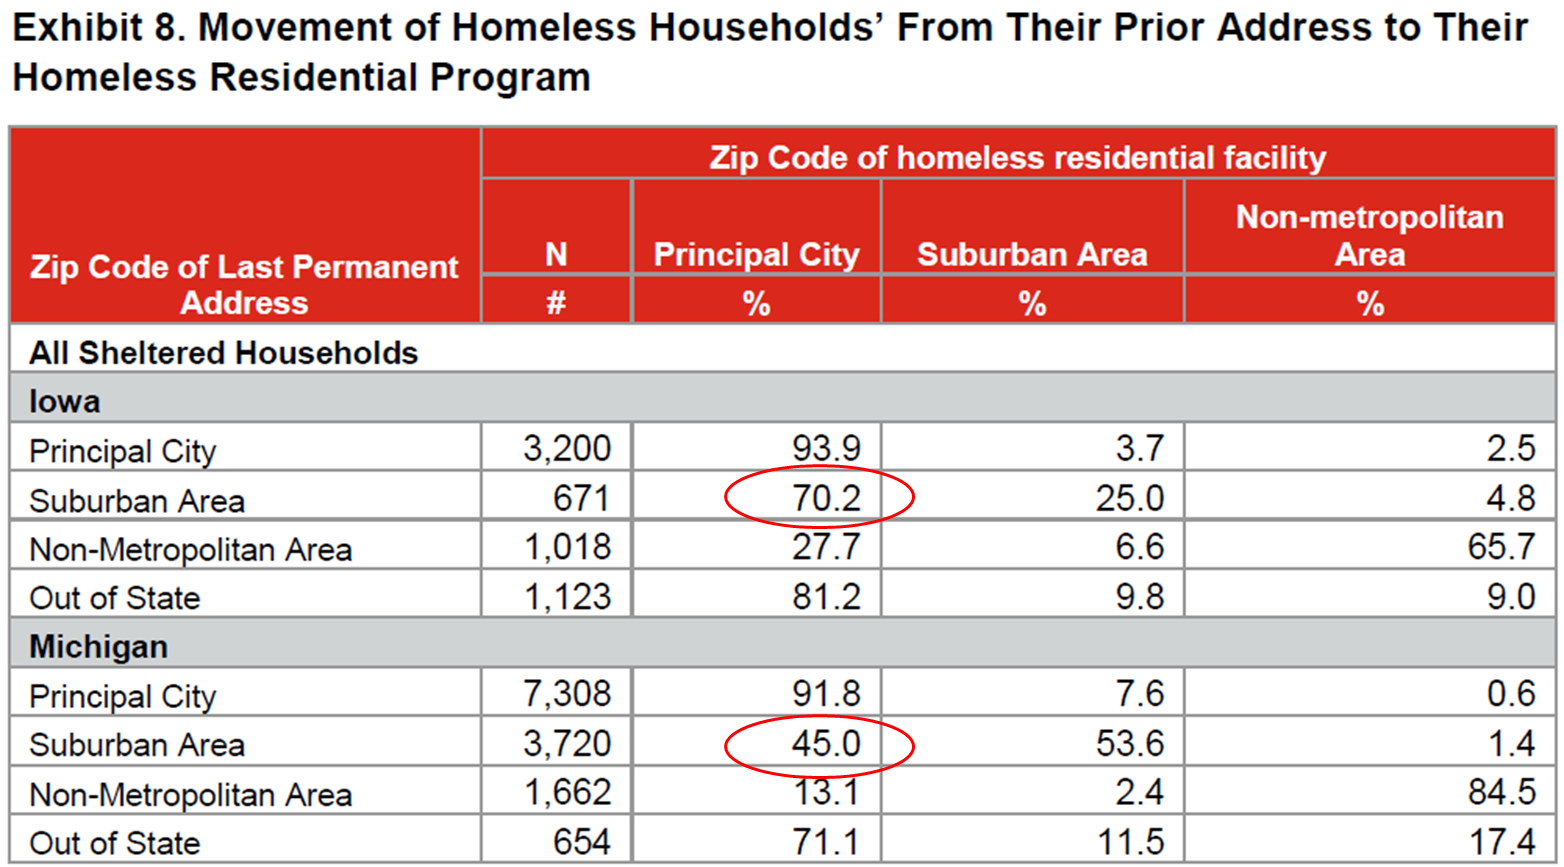 Exhibit 8. Movement of Homeless Households' From Their Prior Address to Their Homeless Residential Program